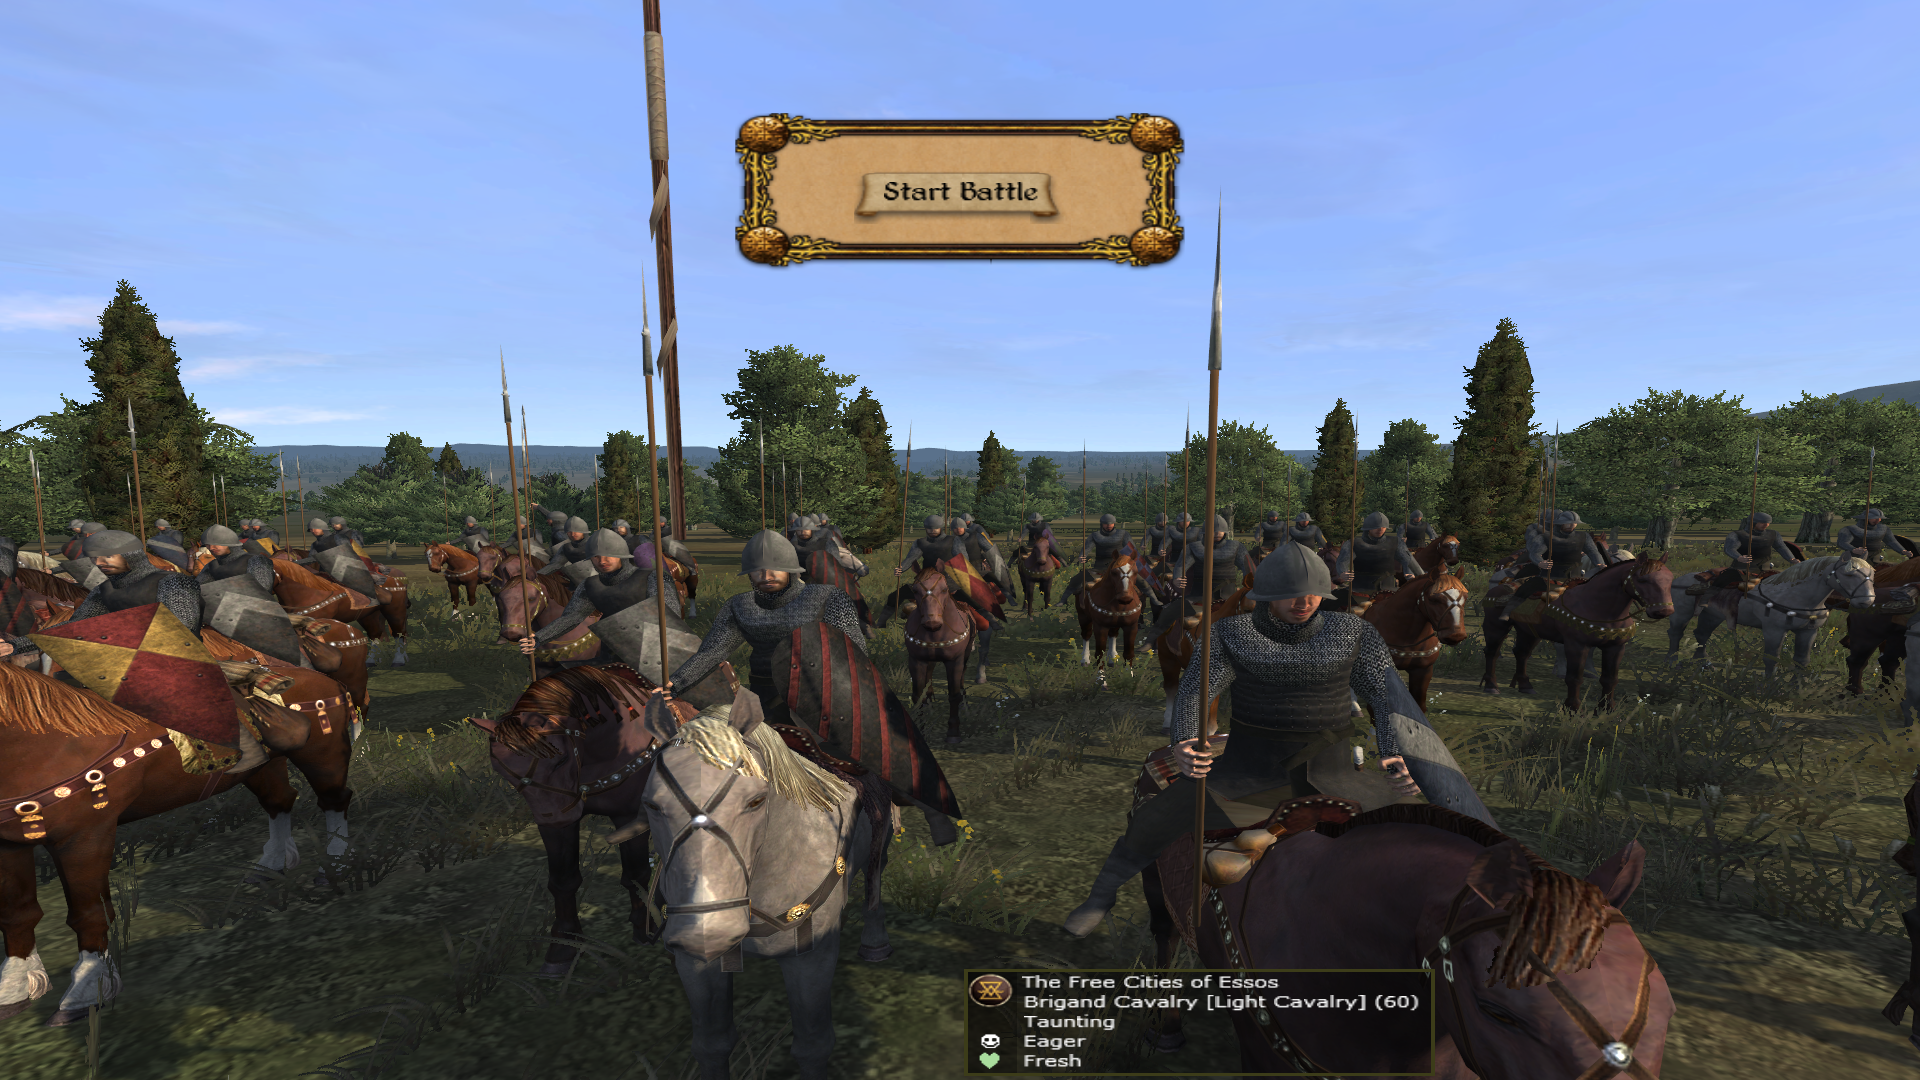 Brigand Cavalry added to the Free Cities of Essos.